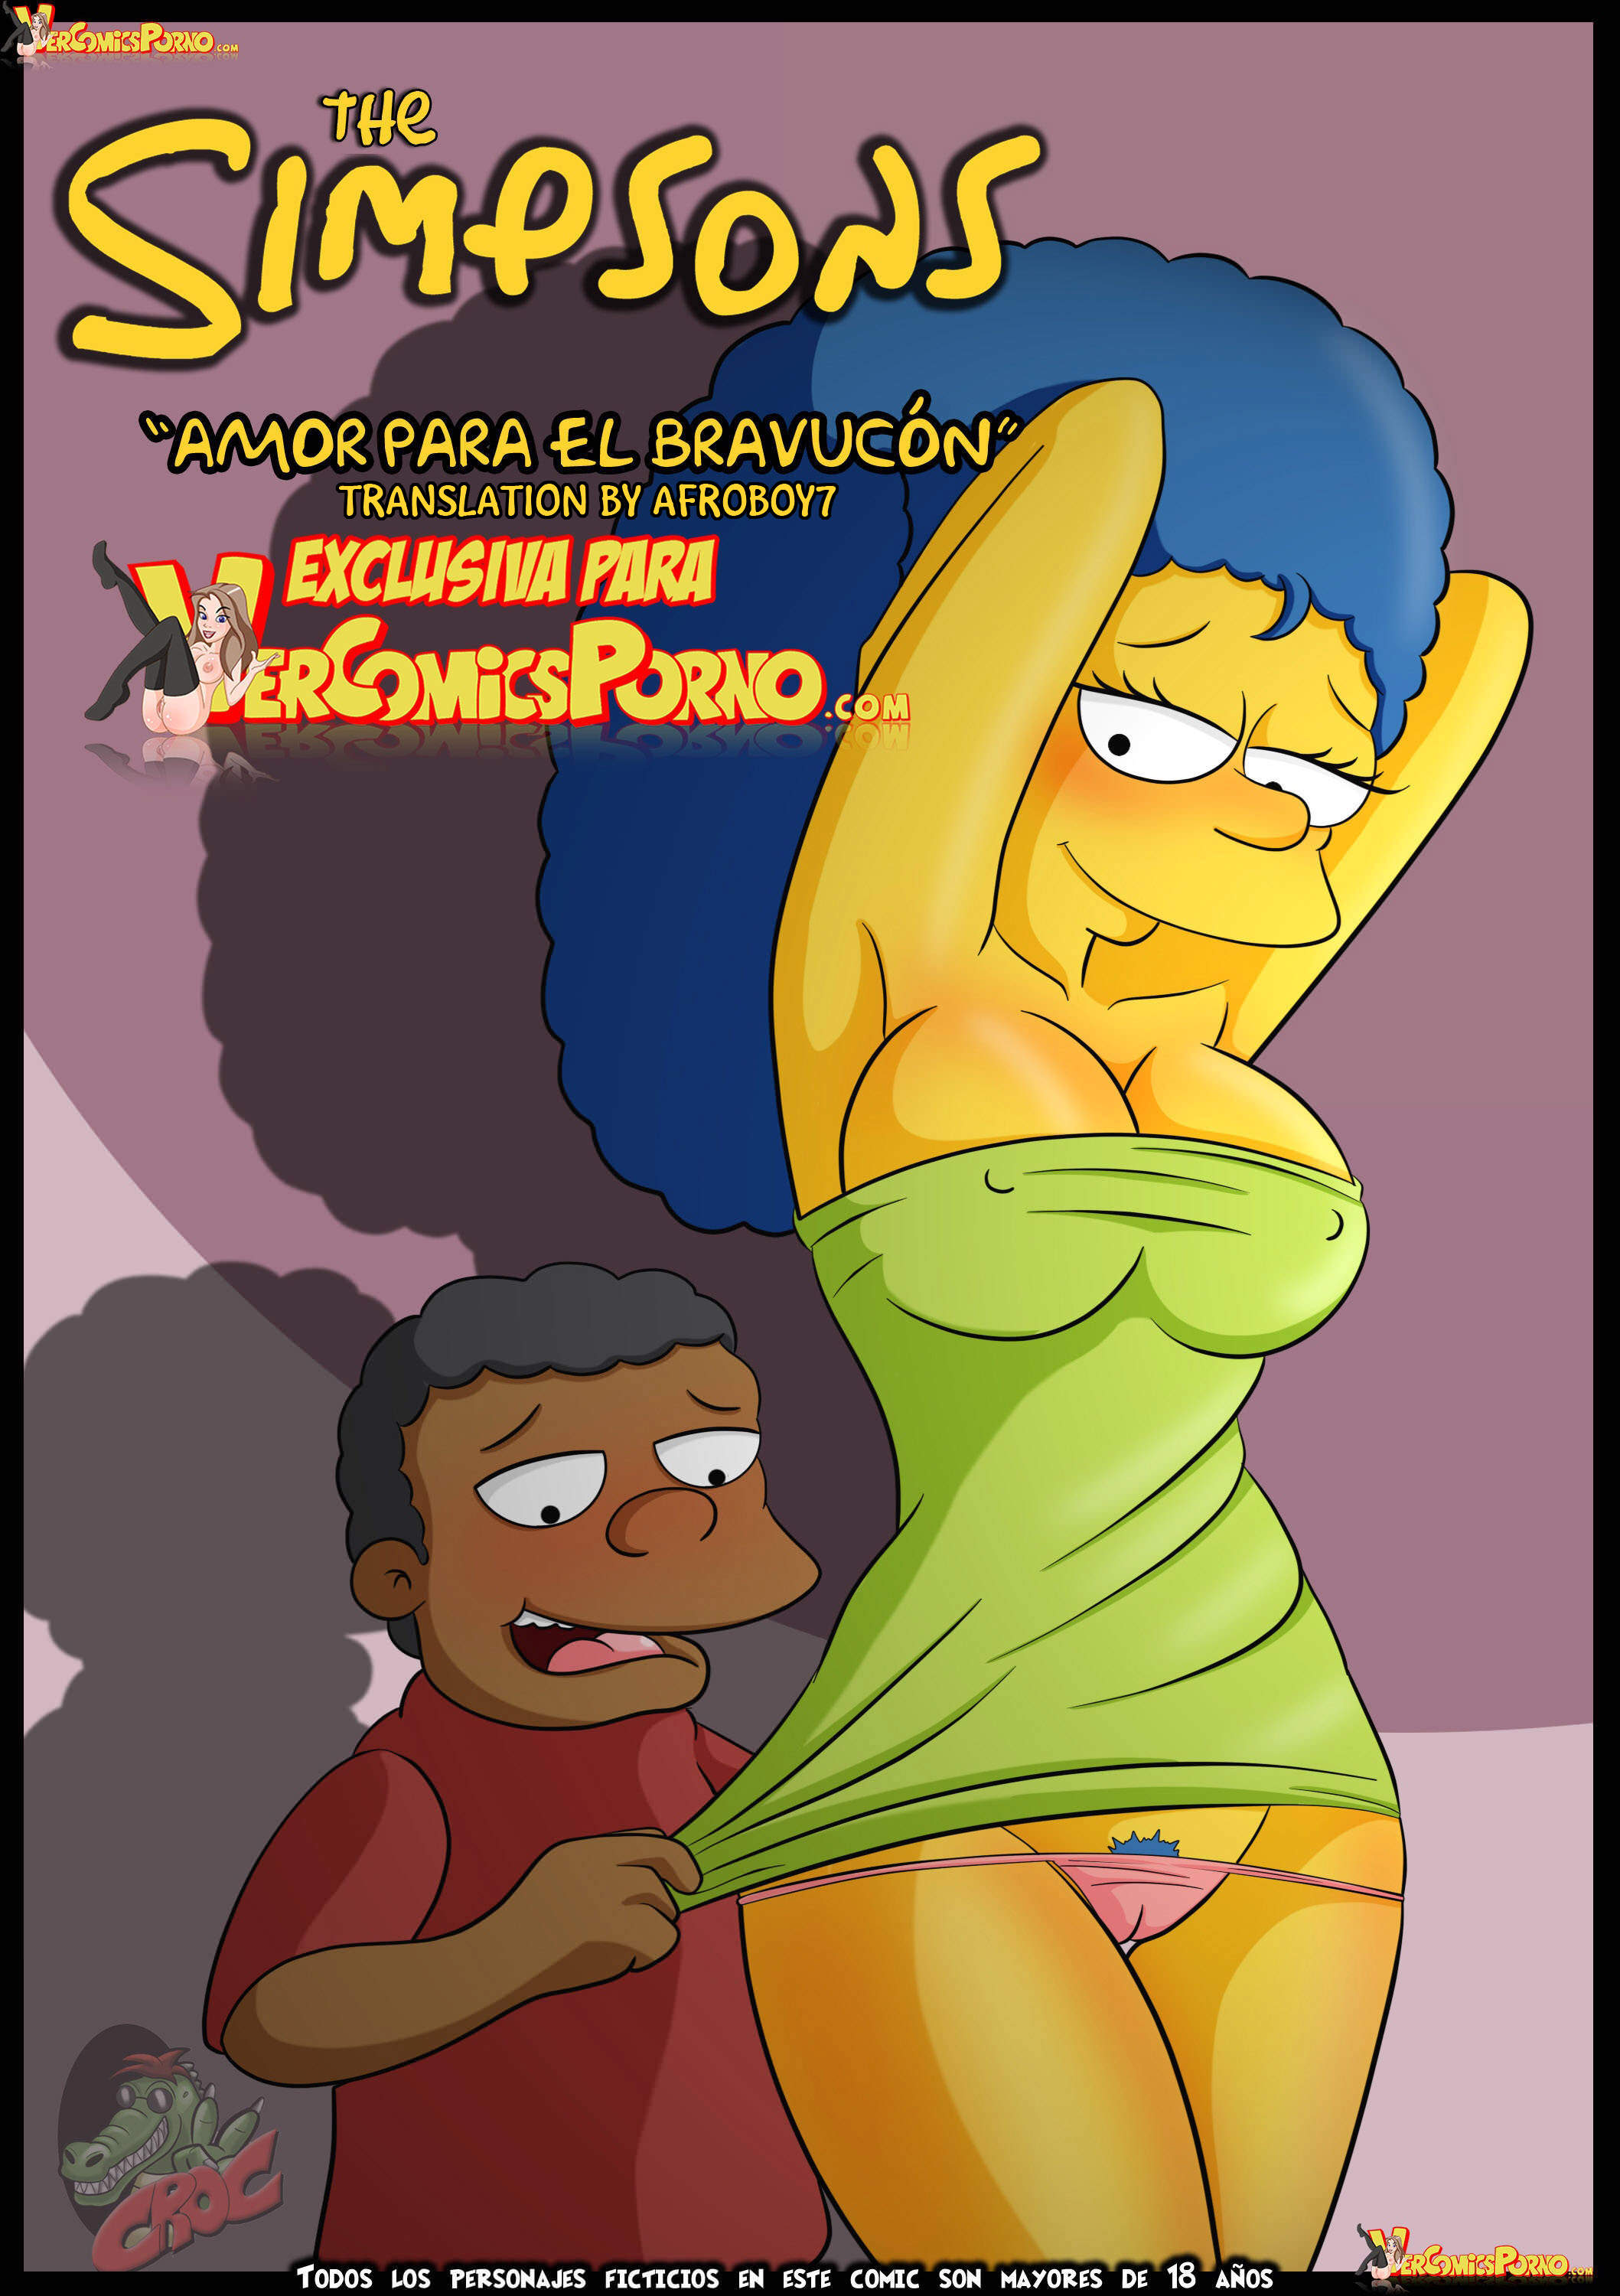 The bullys girlfriend on the simpsons nude thank for